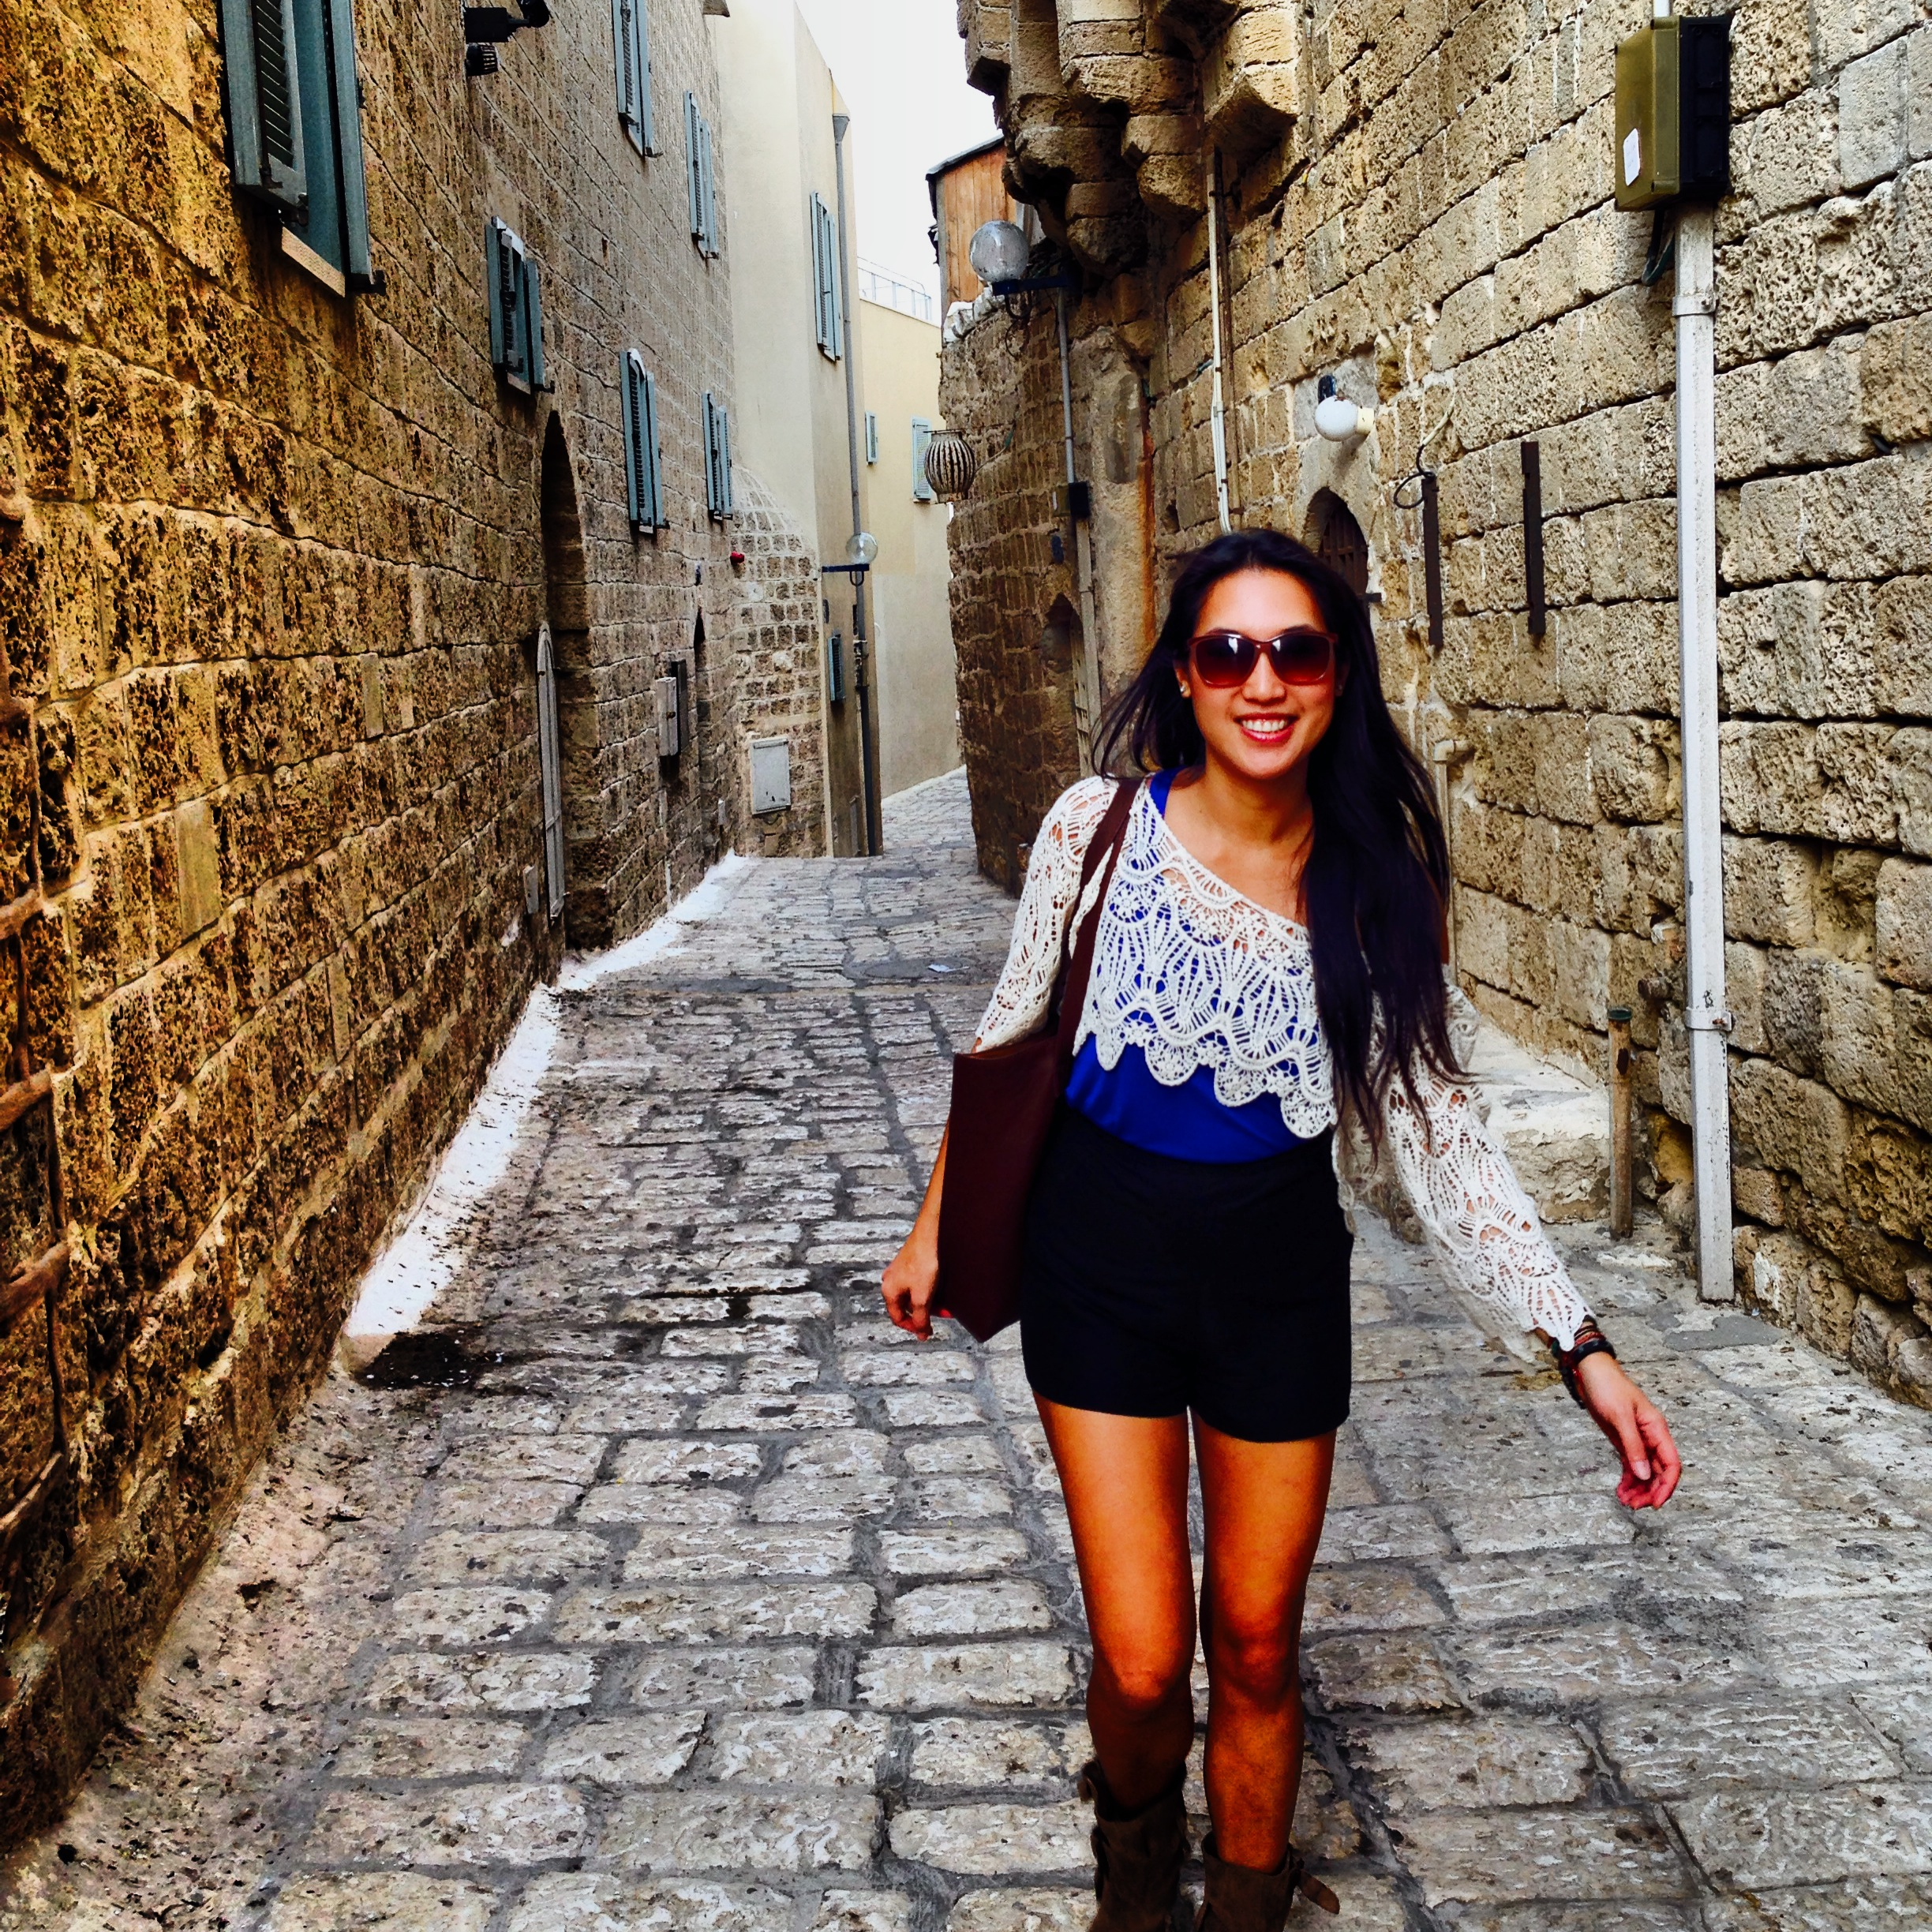 Oh, if these walls could talk. Walking through the streets of Old Jaffa